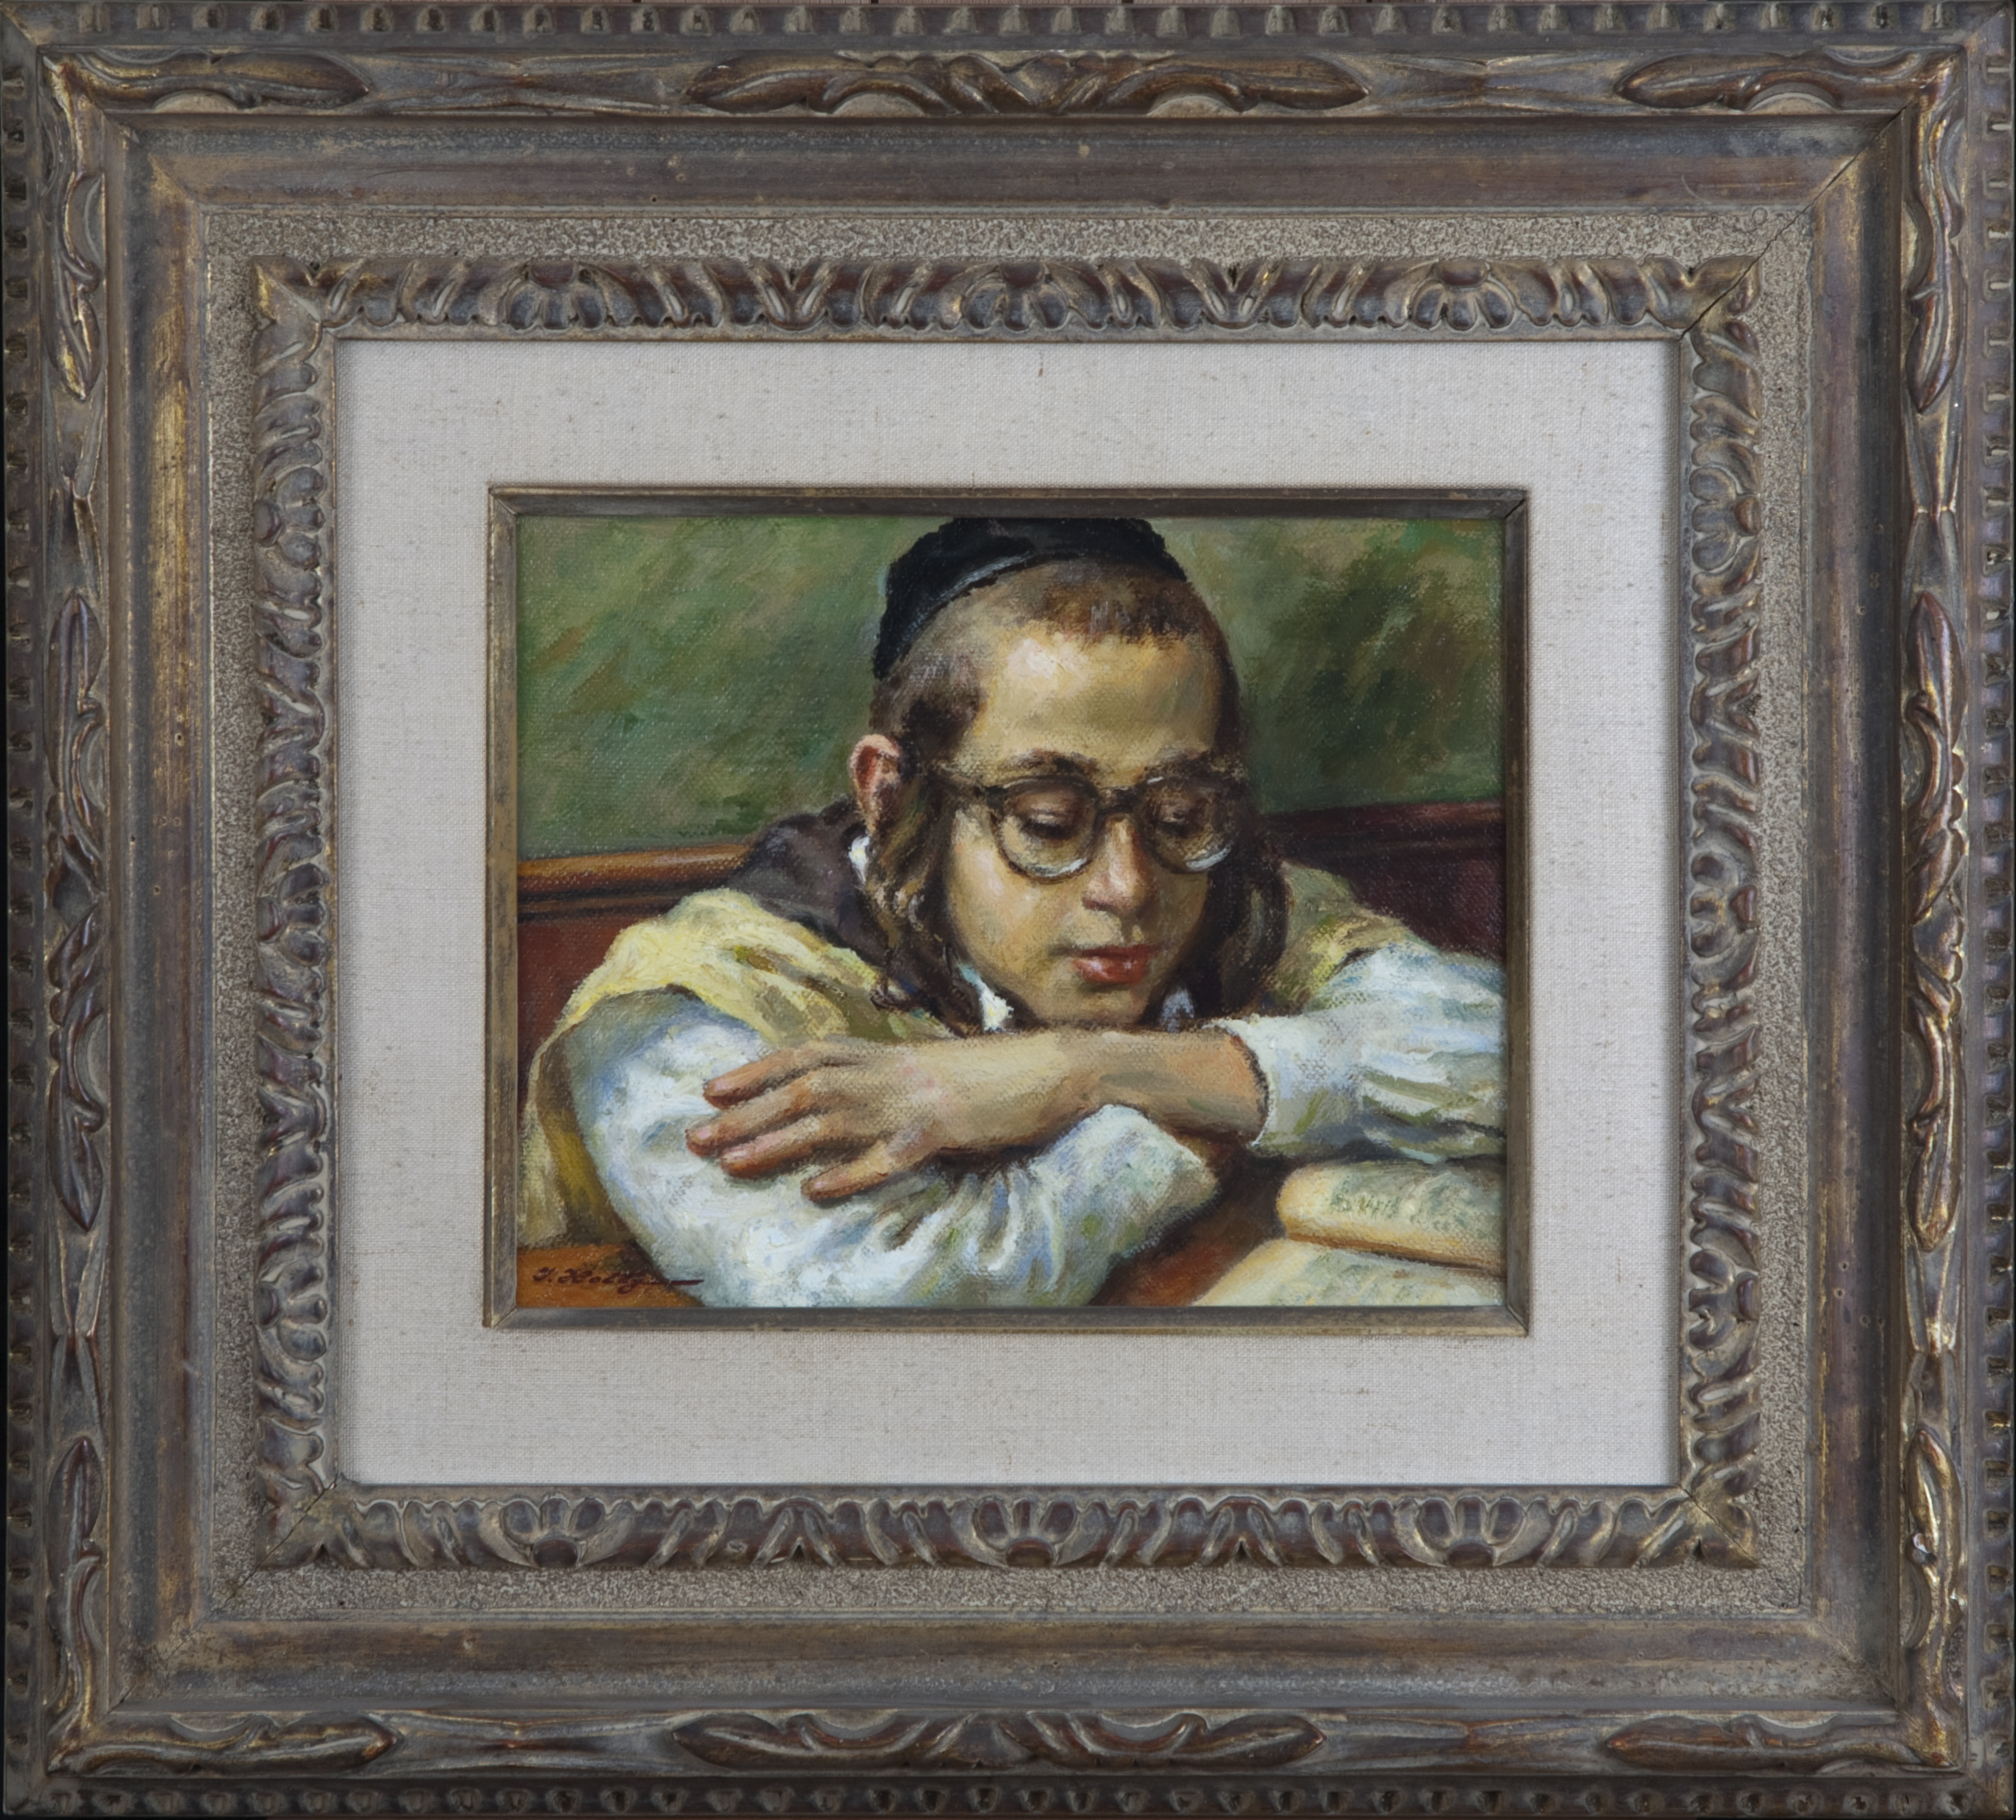 043 Learning 1973-1983 - Oil on Canvas - 10 x 8 - Frame: 19.5 x 17.5 x 2.5